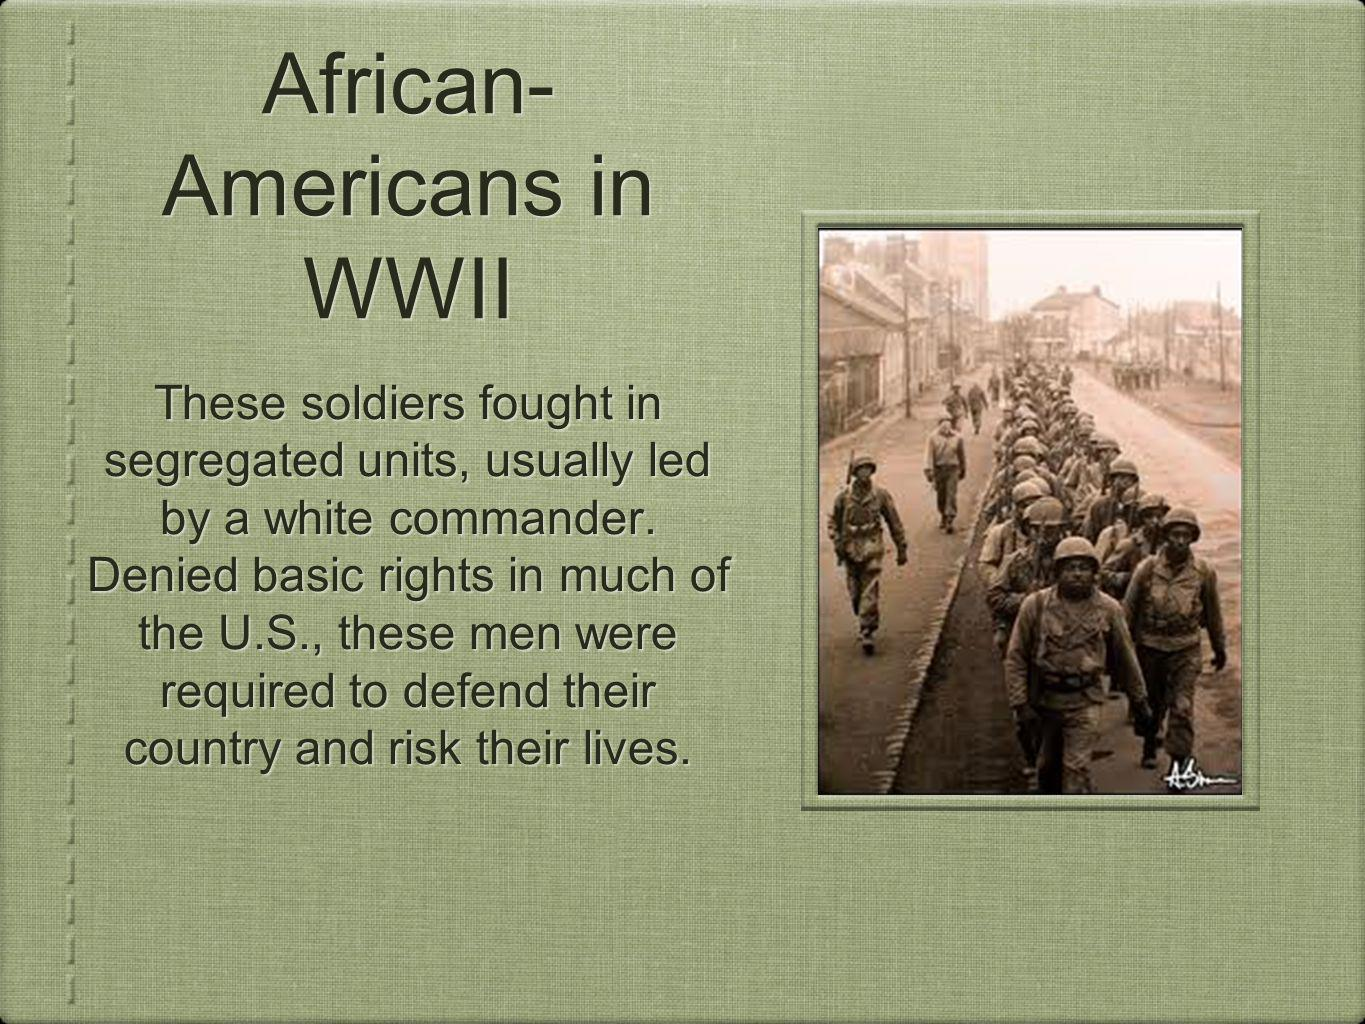 African- Americans in WWII These soldiers fought in segregated units, usually led by a white commander. Denied basic rights in much of the U.S., these